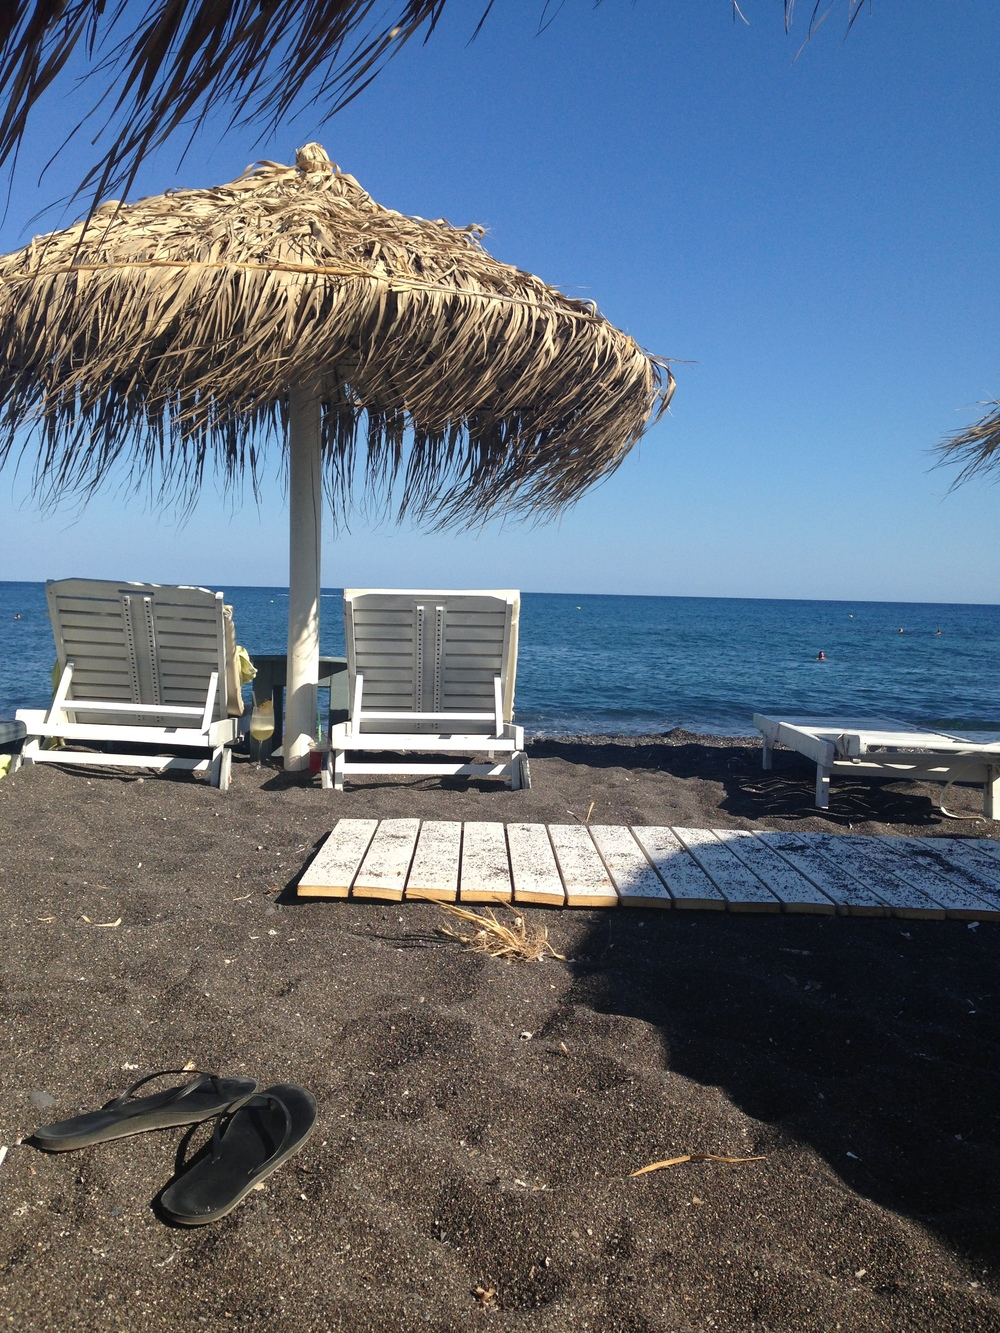 Rent a chair and umbrella and enjoy the black sand beaches.